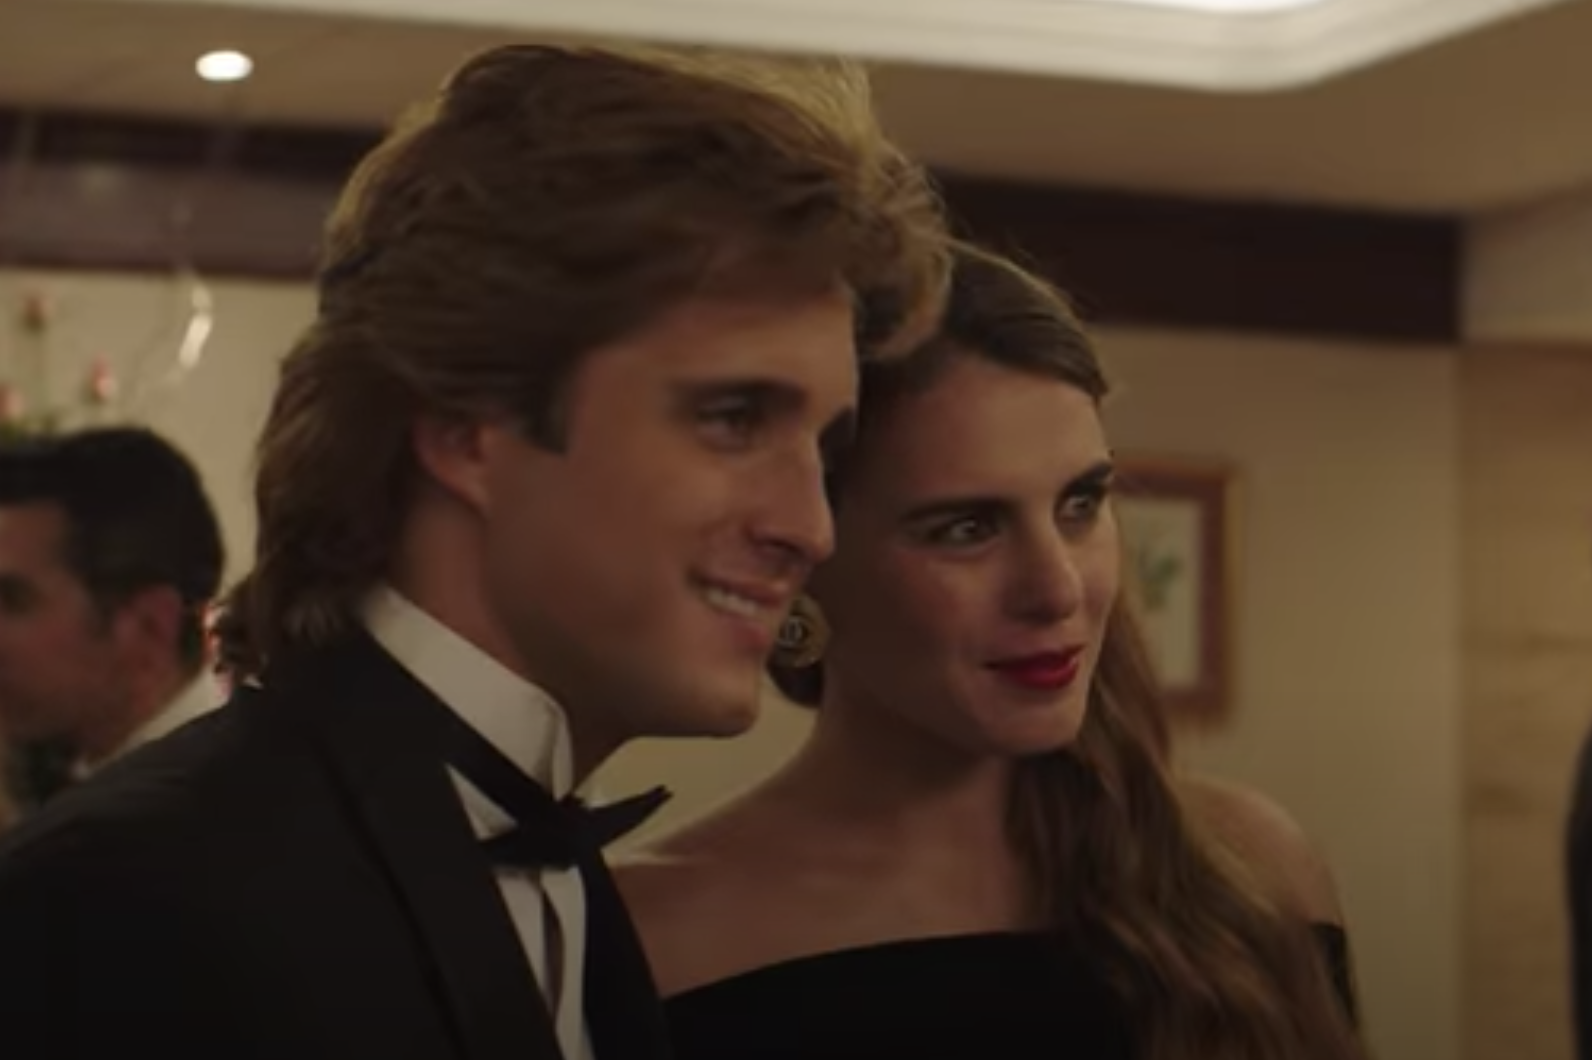 Diego Boneta as Luis Miguel